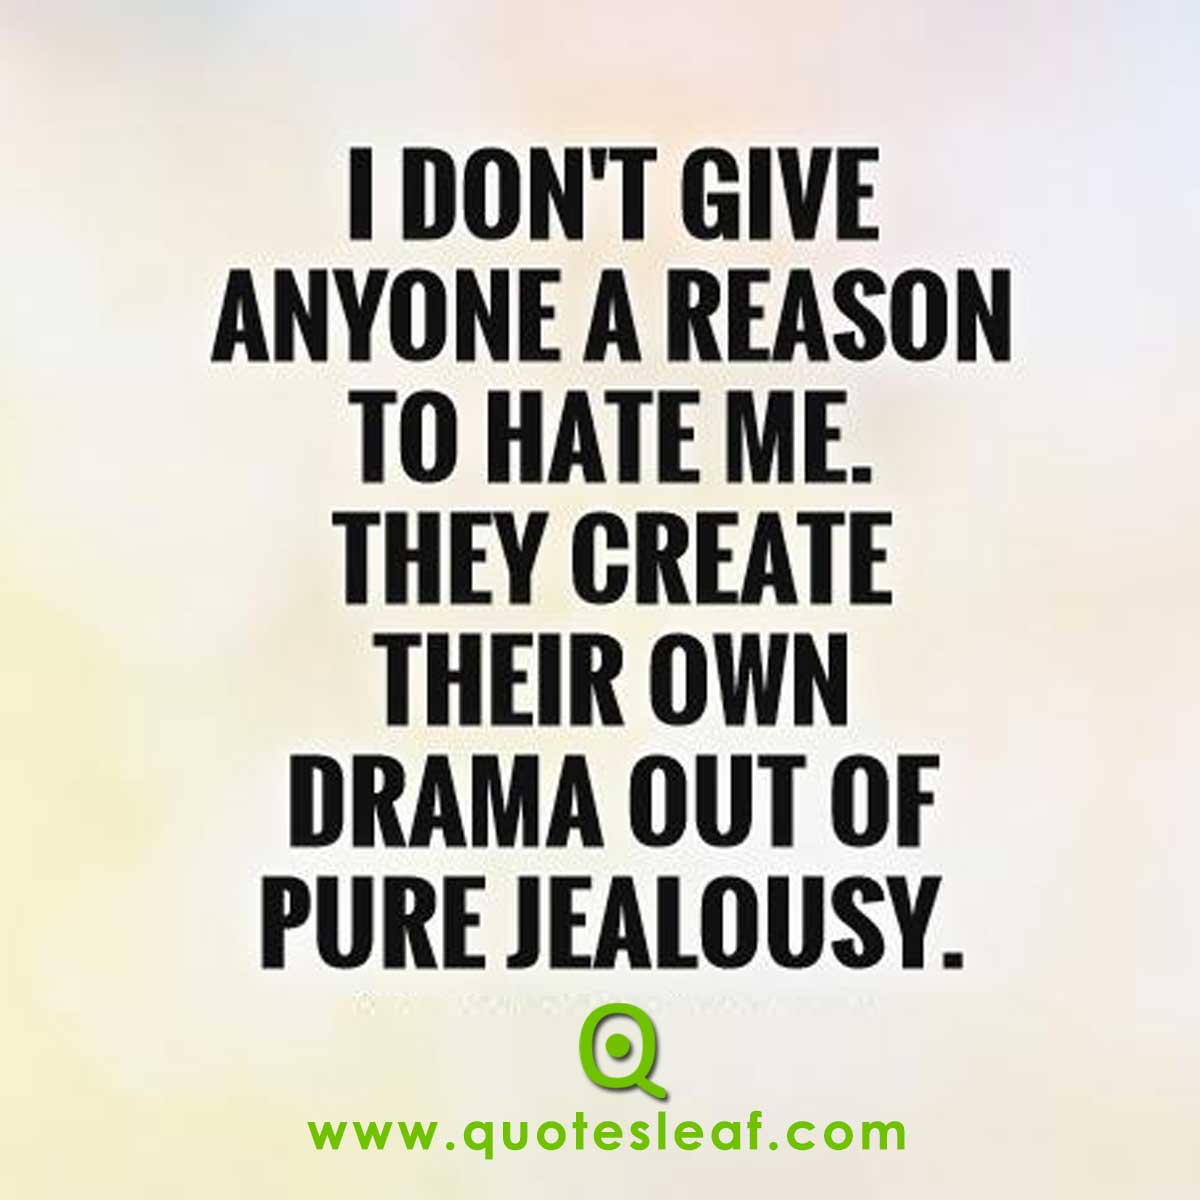 Quotes about Starting drama (68 quotes)